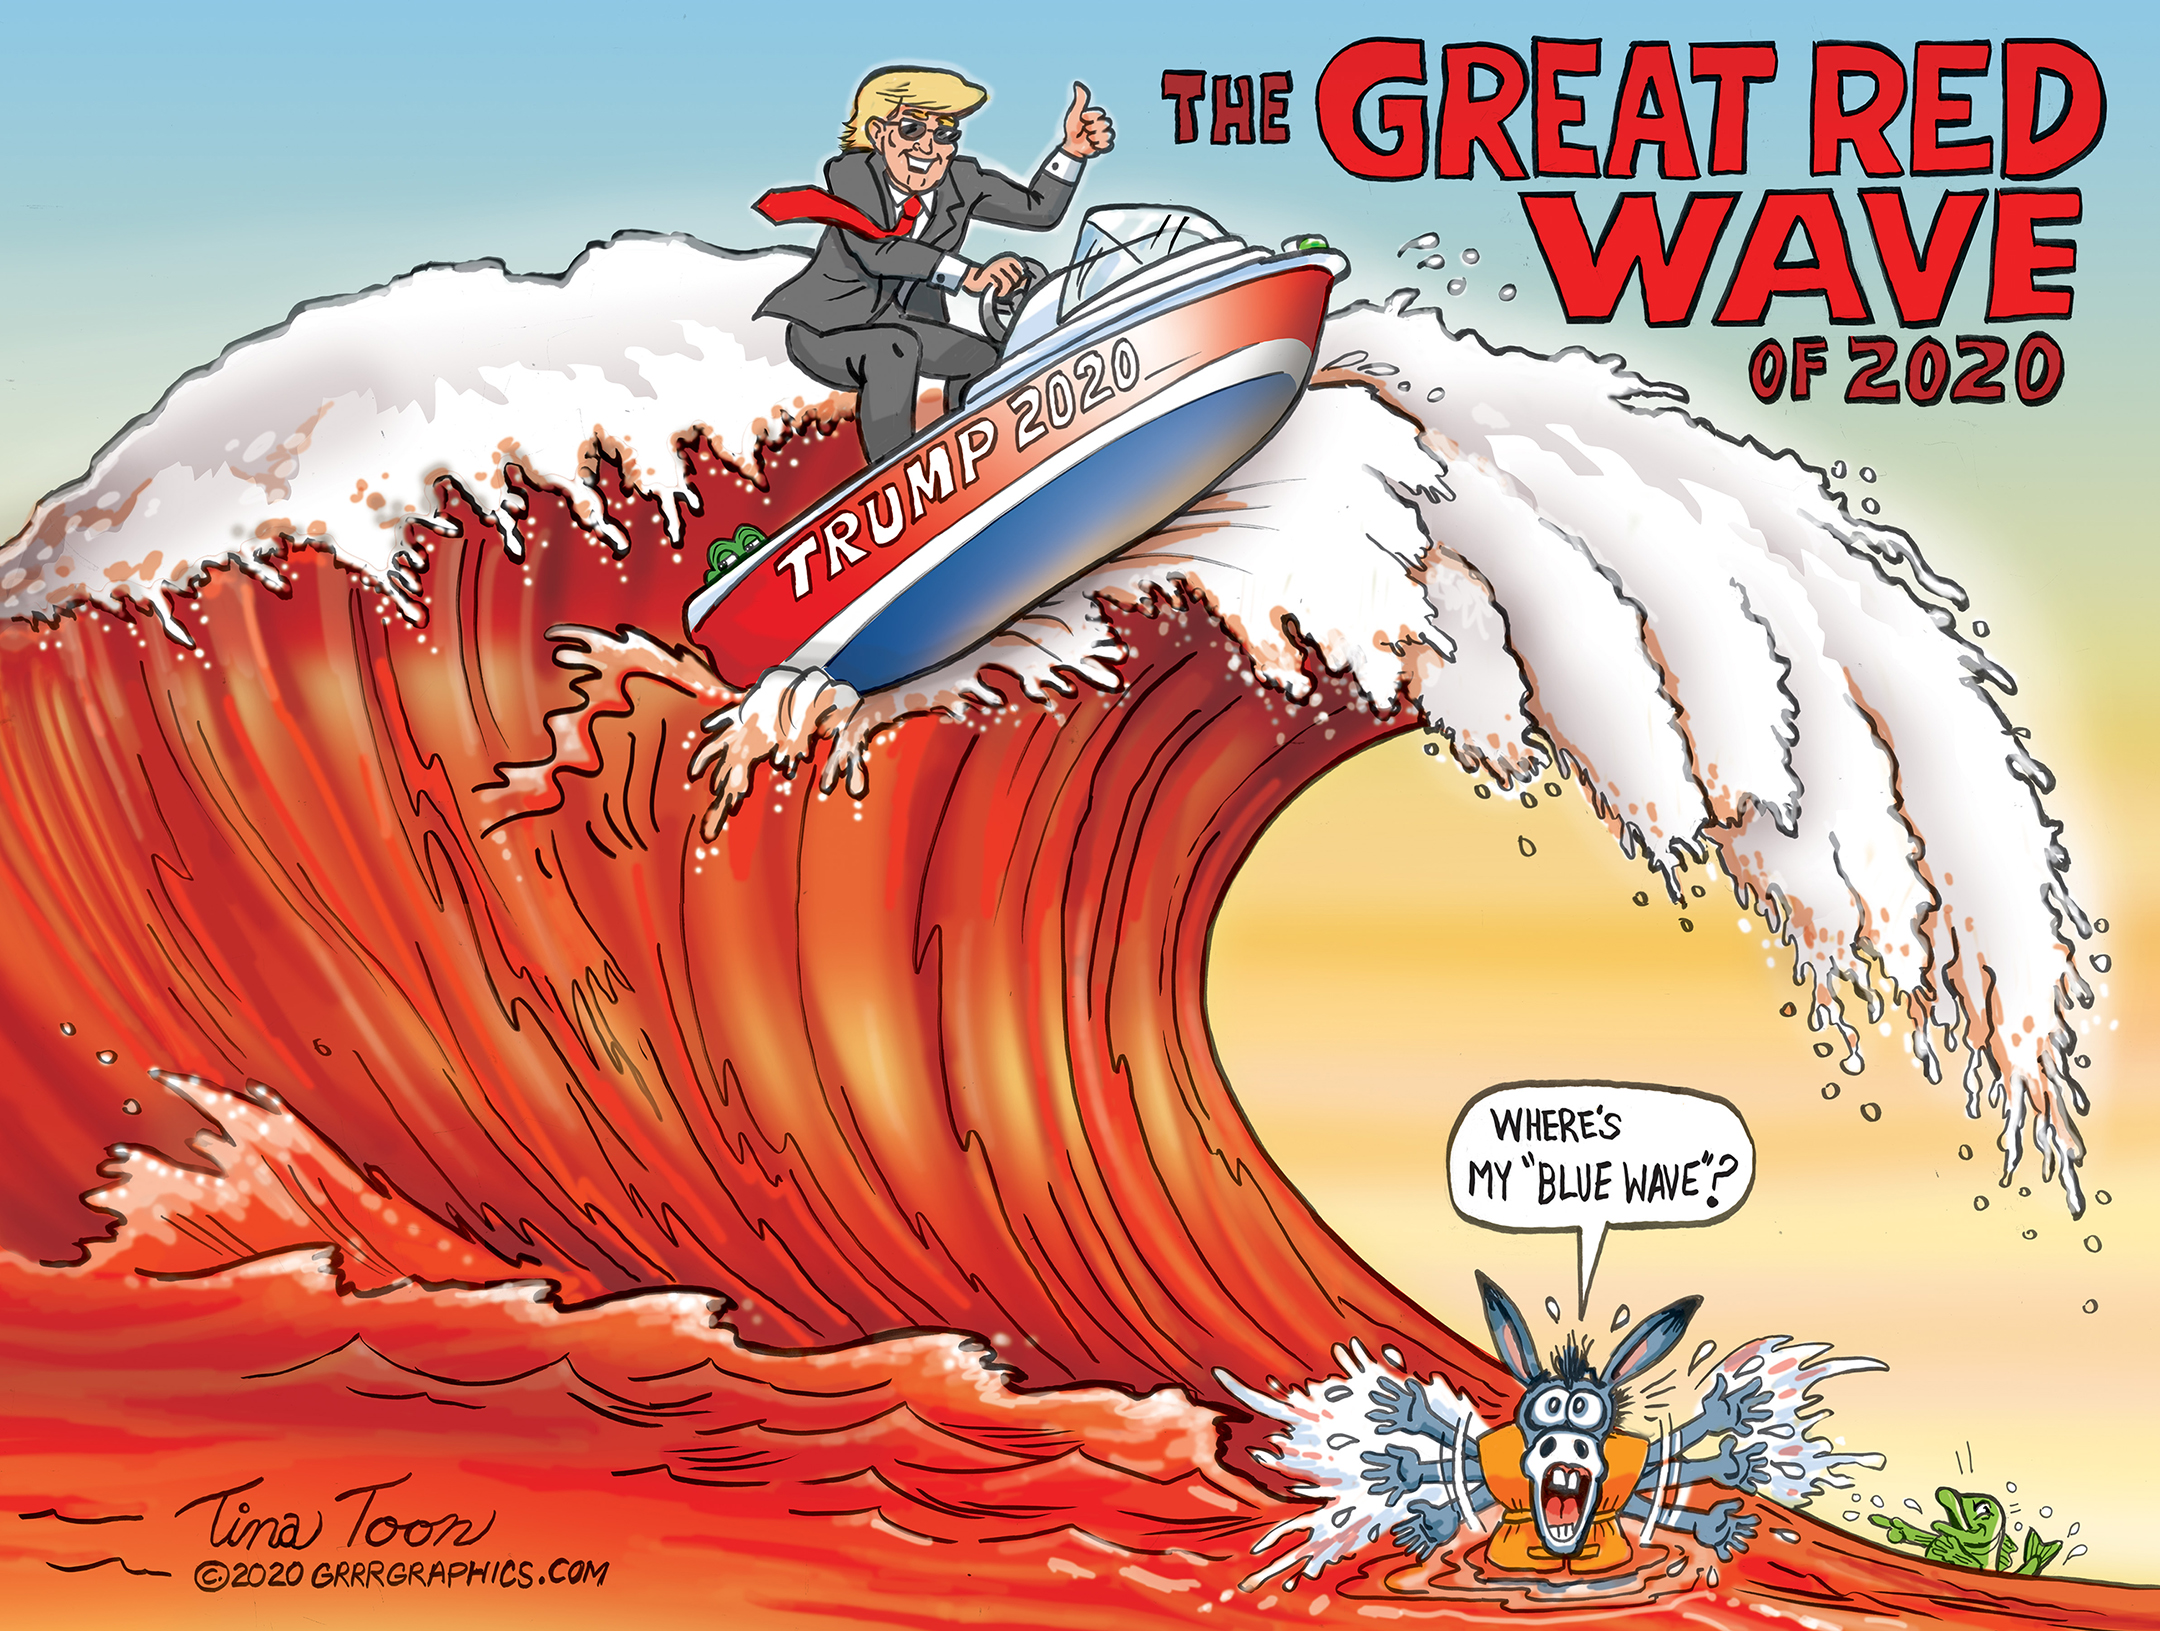 TRUMP - GREAT RED WAVE